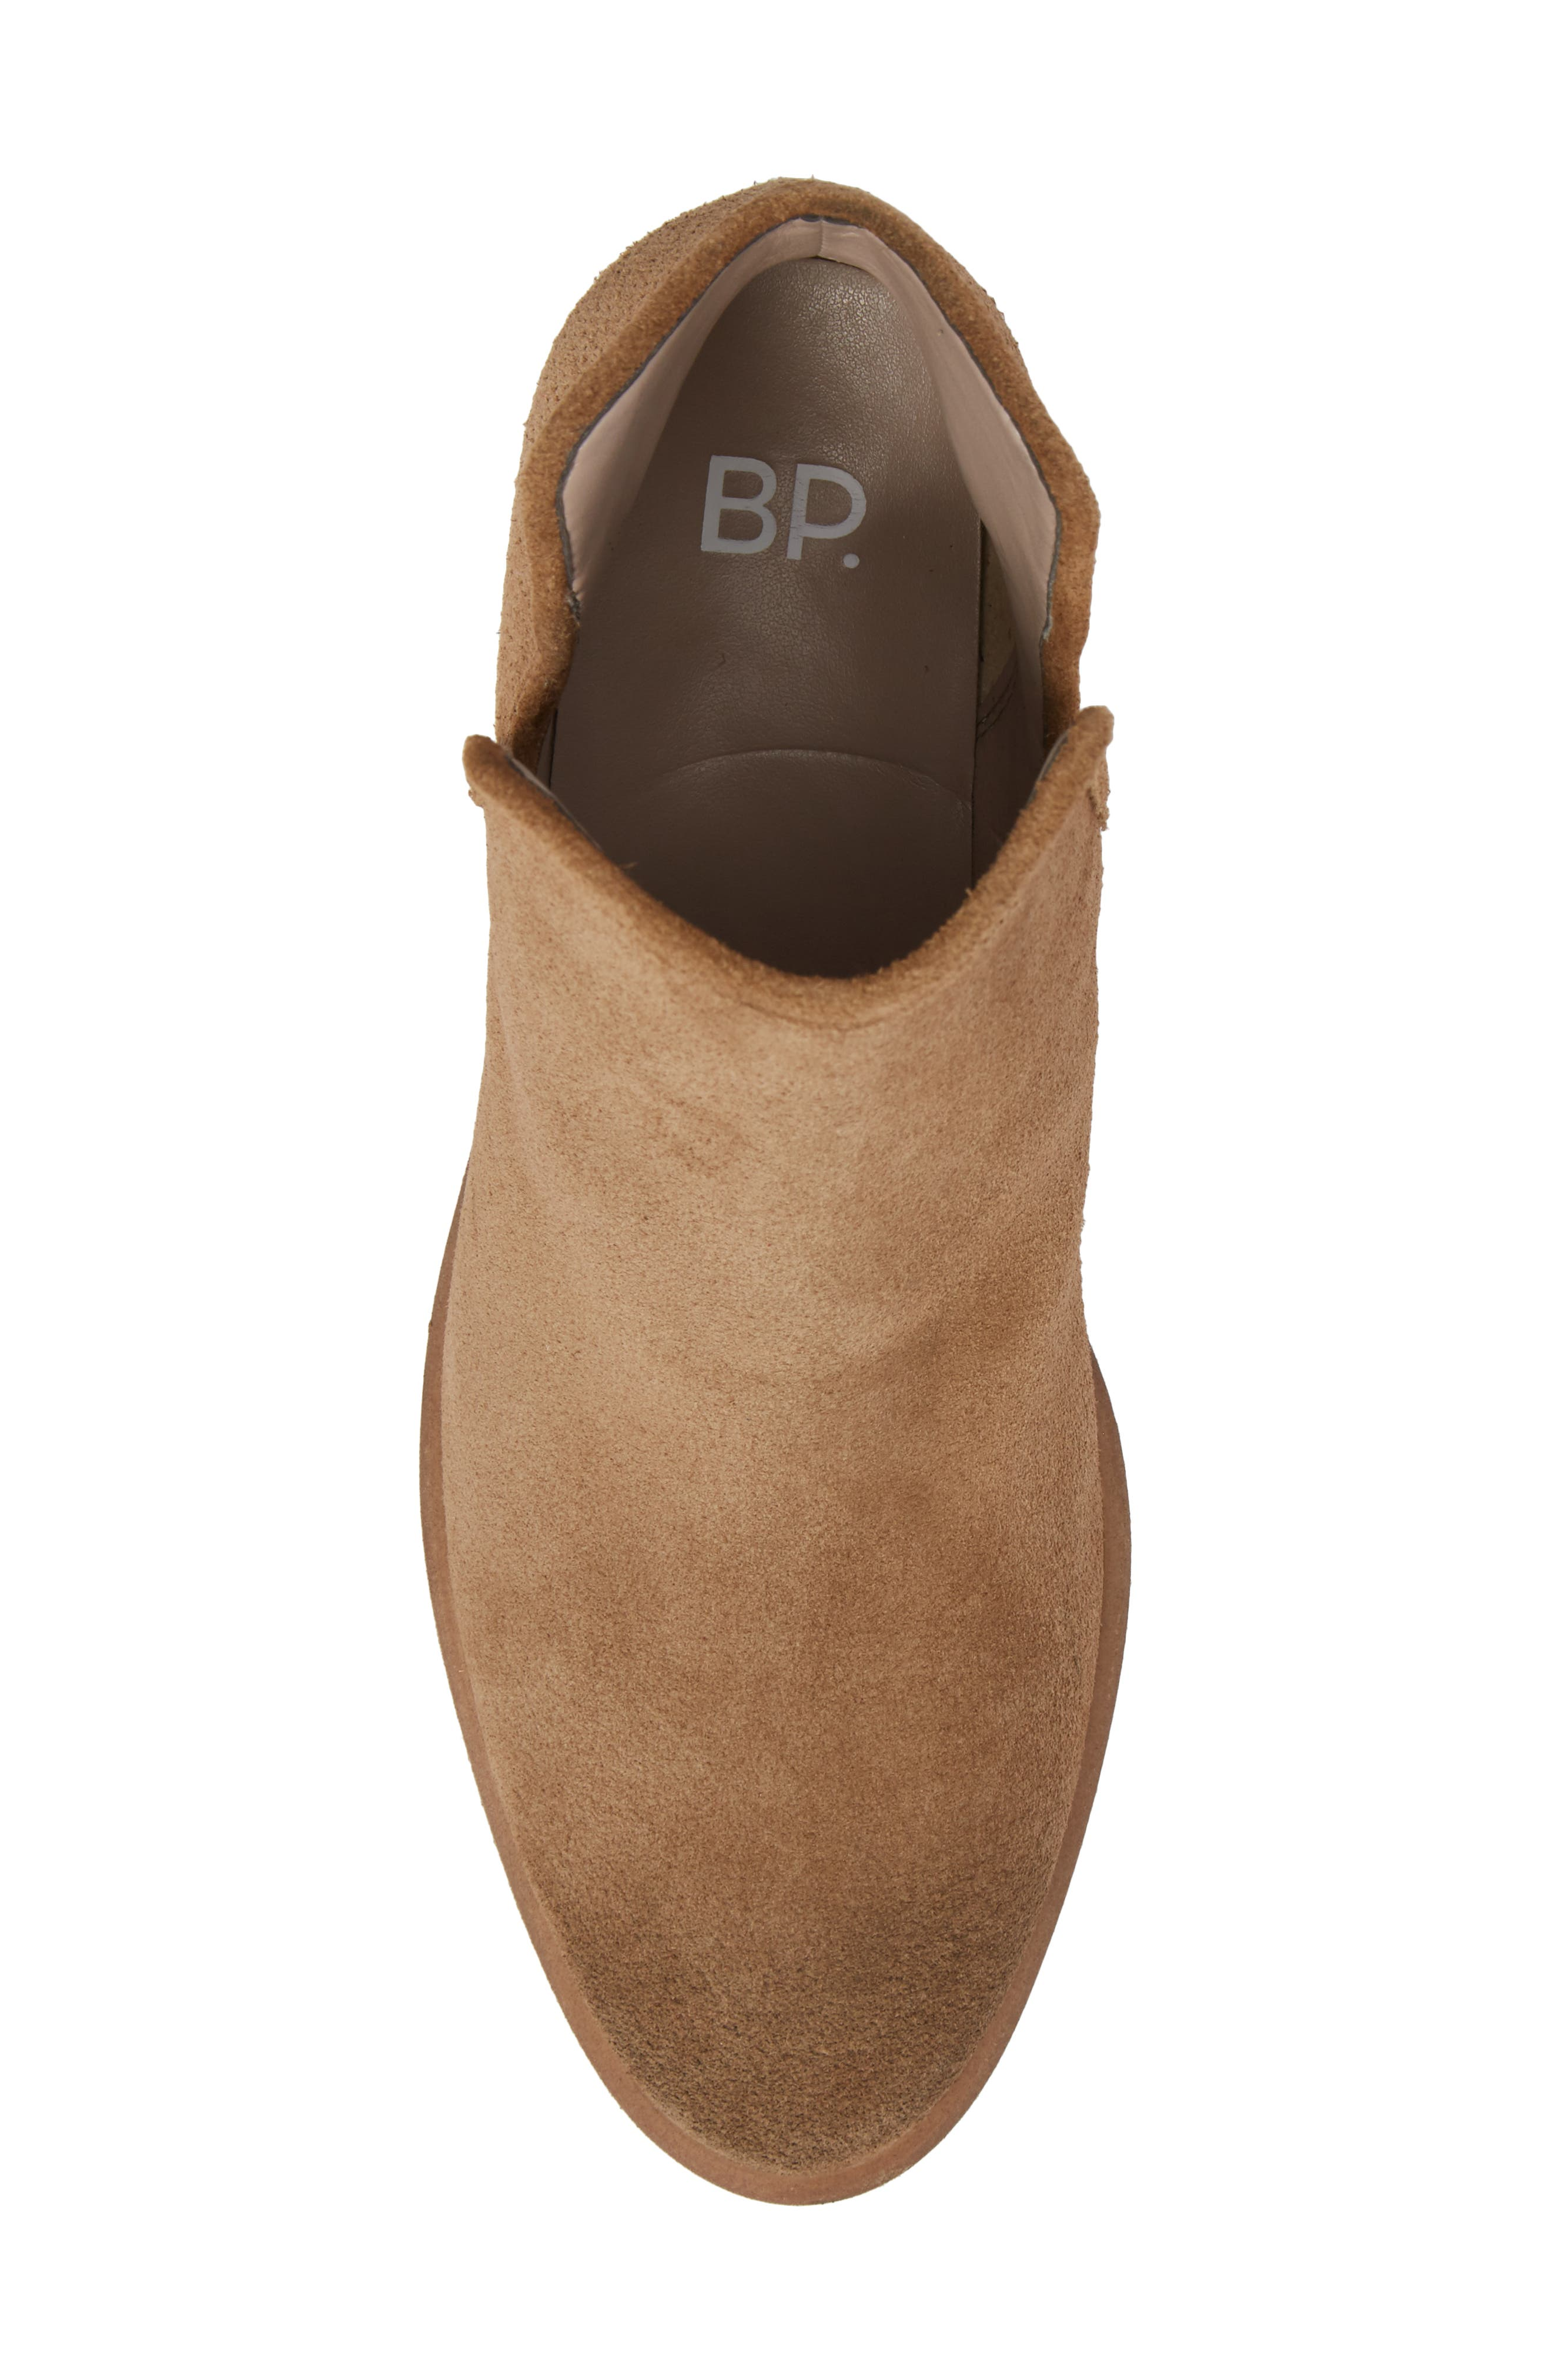 ,                             BP Barris Block Heel Bootie,                             Alternate thumbnail 51, color,                             202